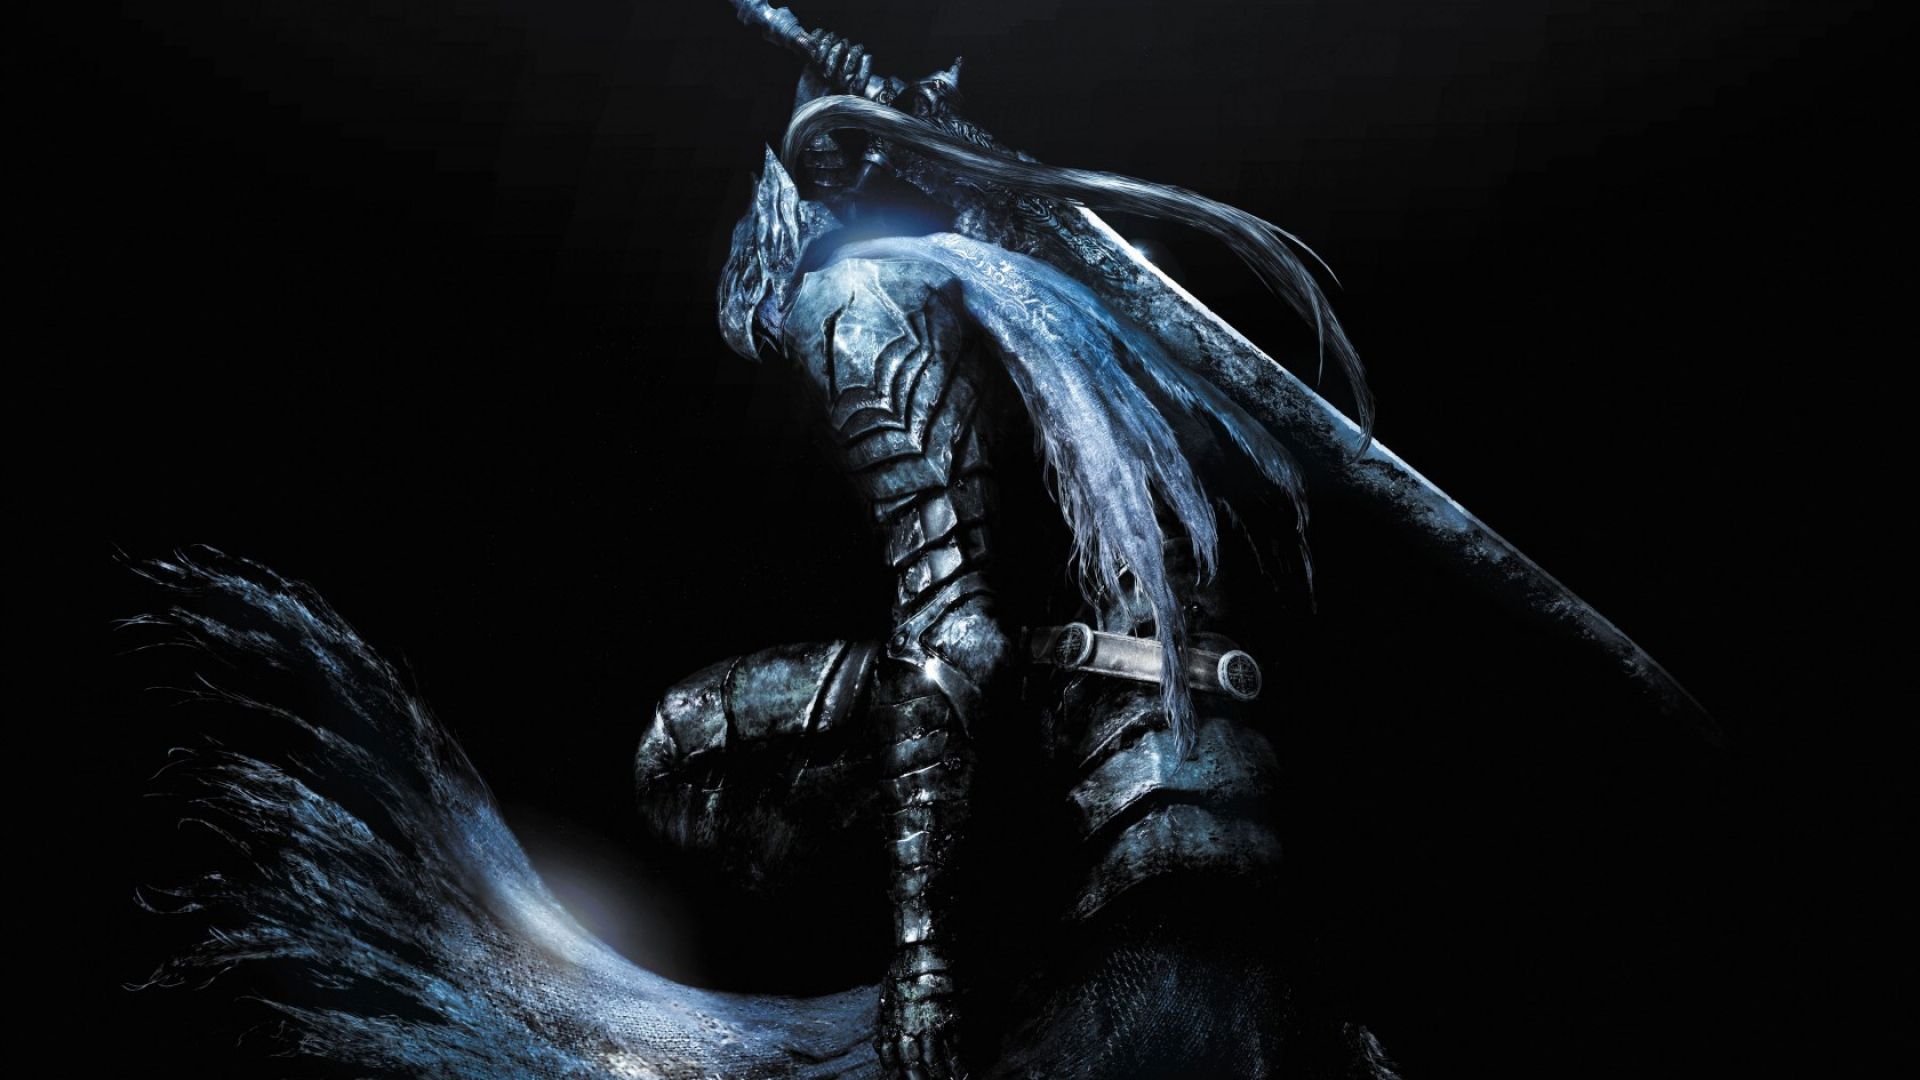 Dark Souls 3 Wallpapers High Quality Is Cool Wallpapers